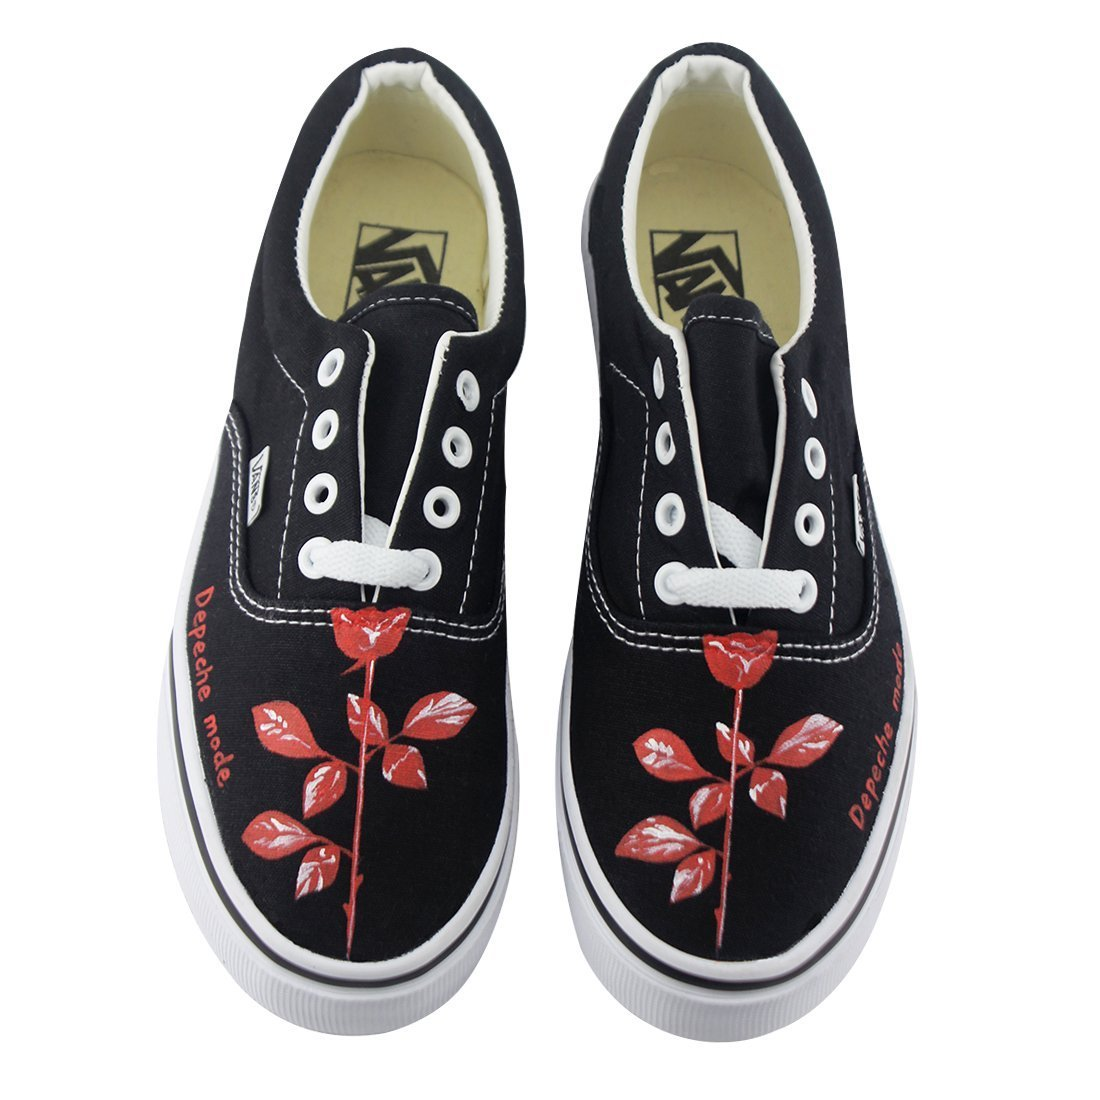 Hand Painted Shoes Men Women Sneakers